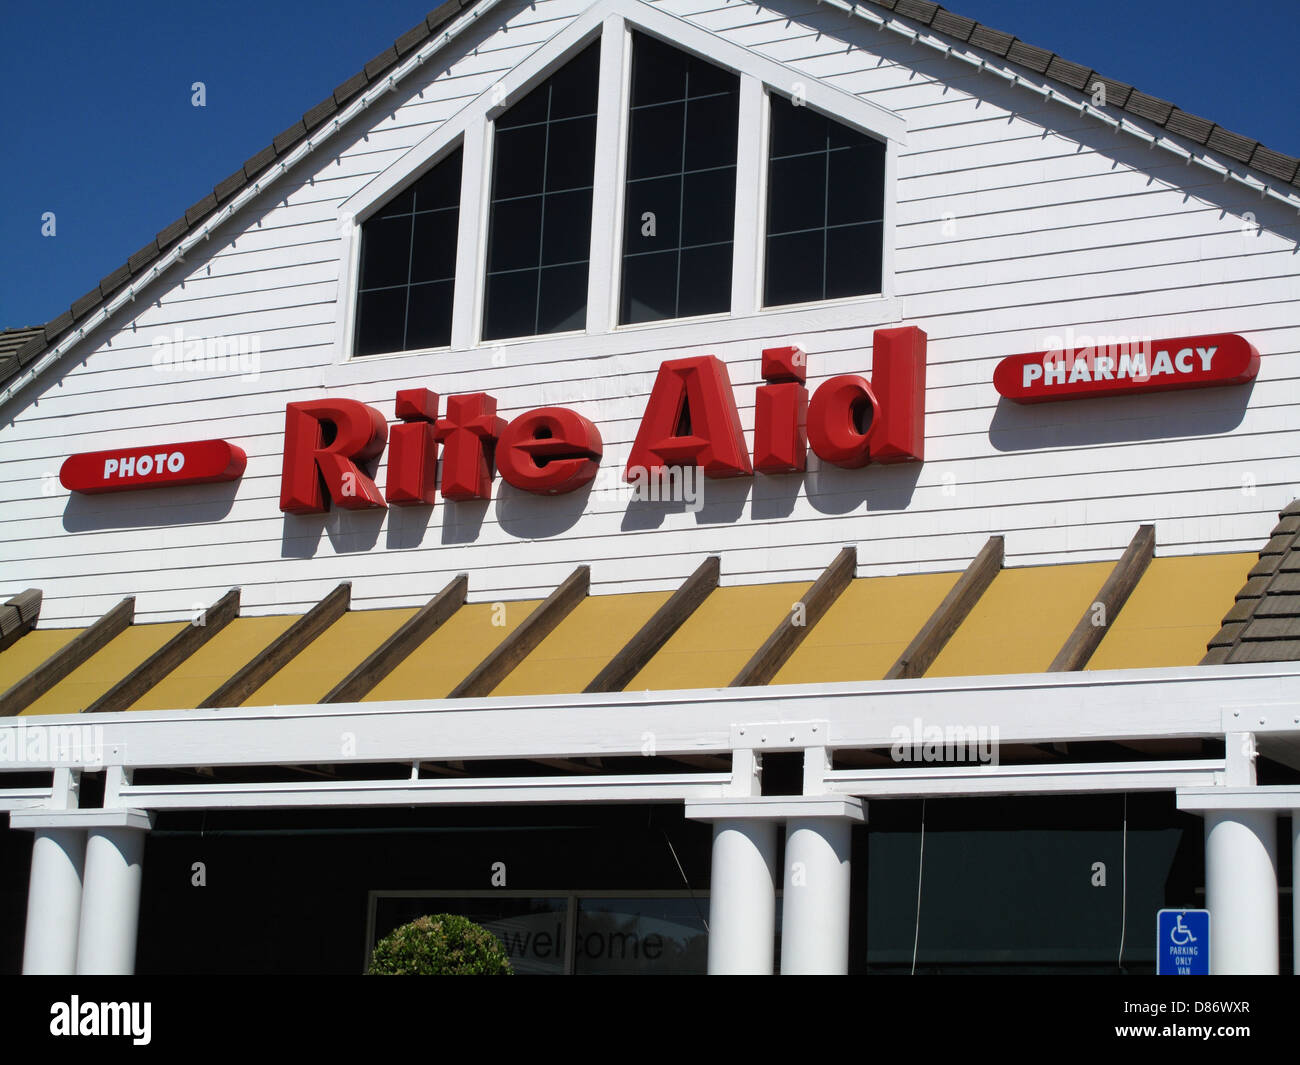 Drugstores Stock Photos & Drugstores Stock Images - Alamy